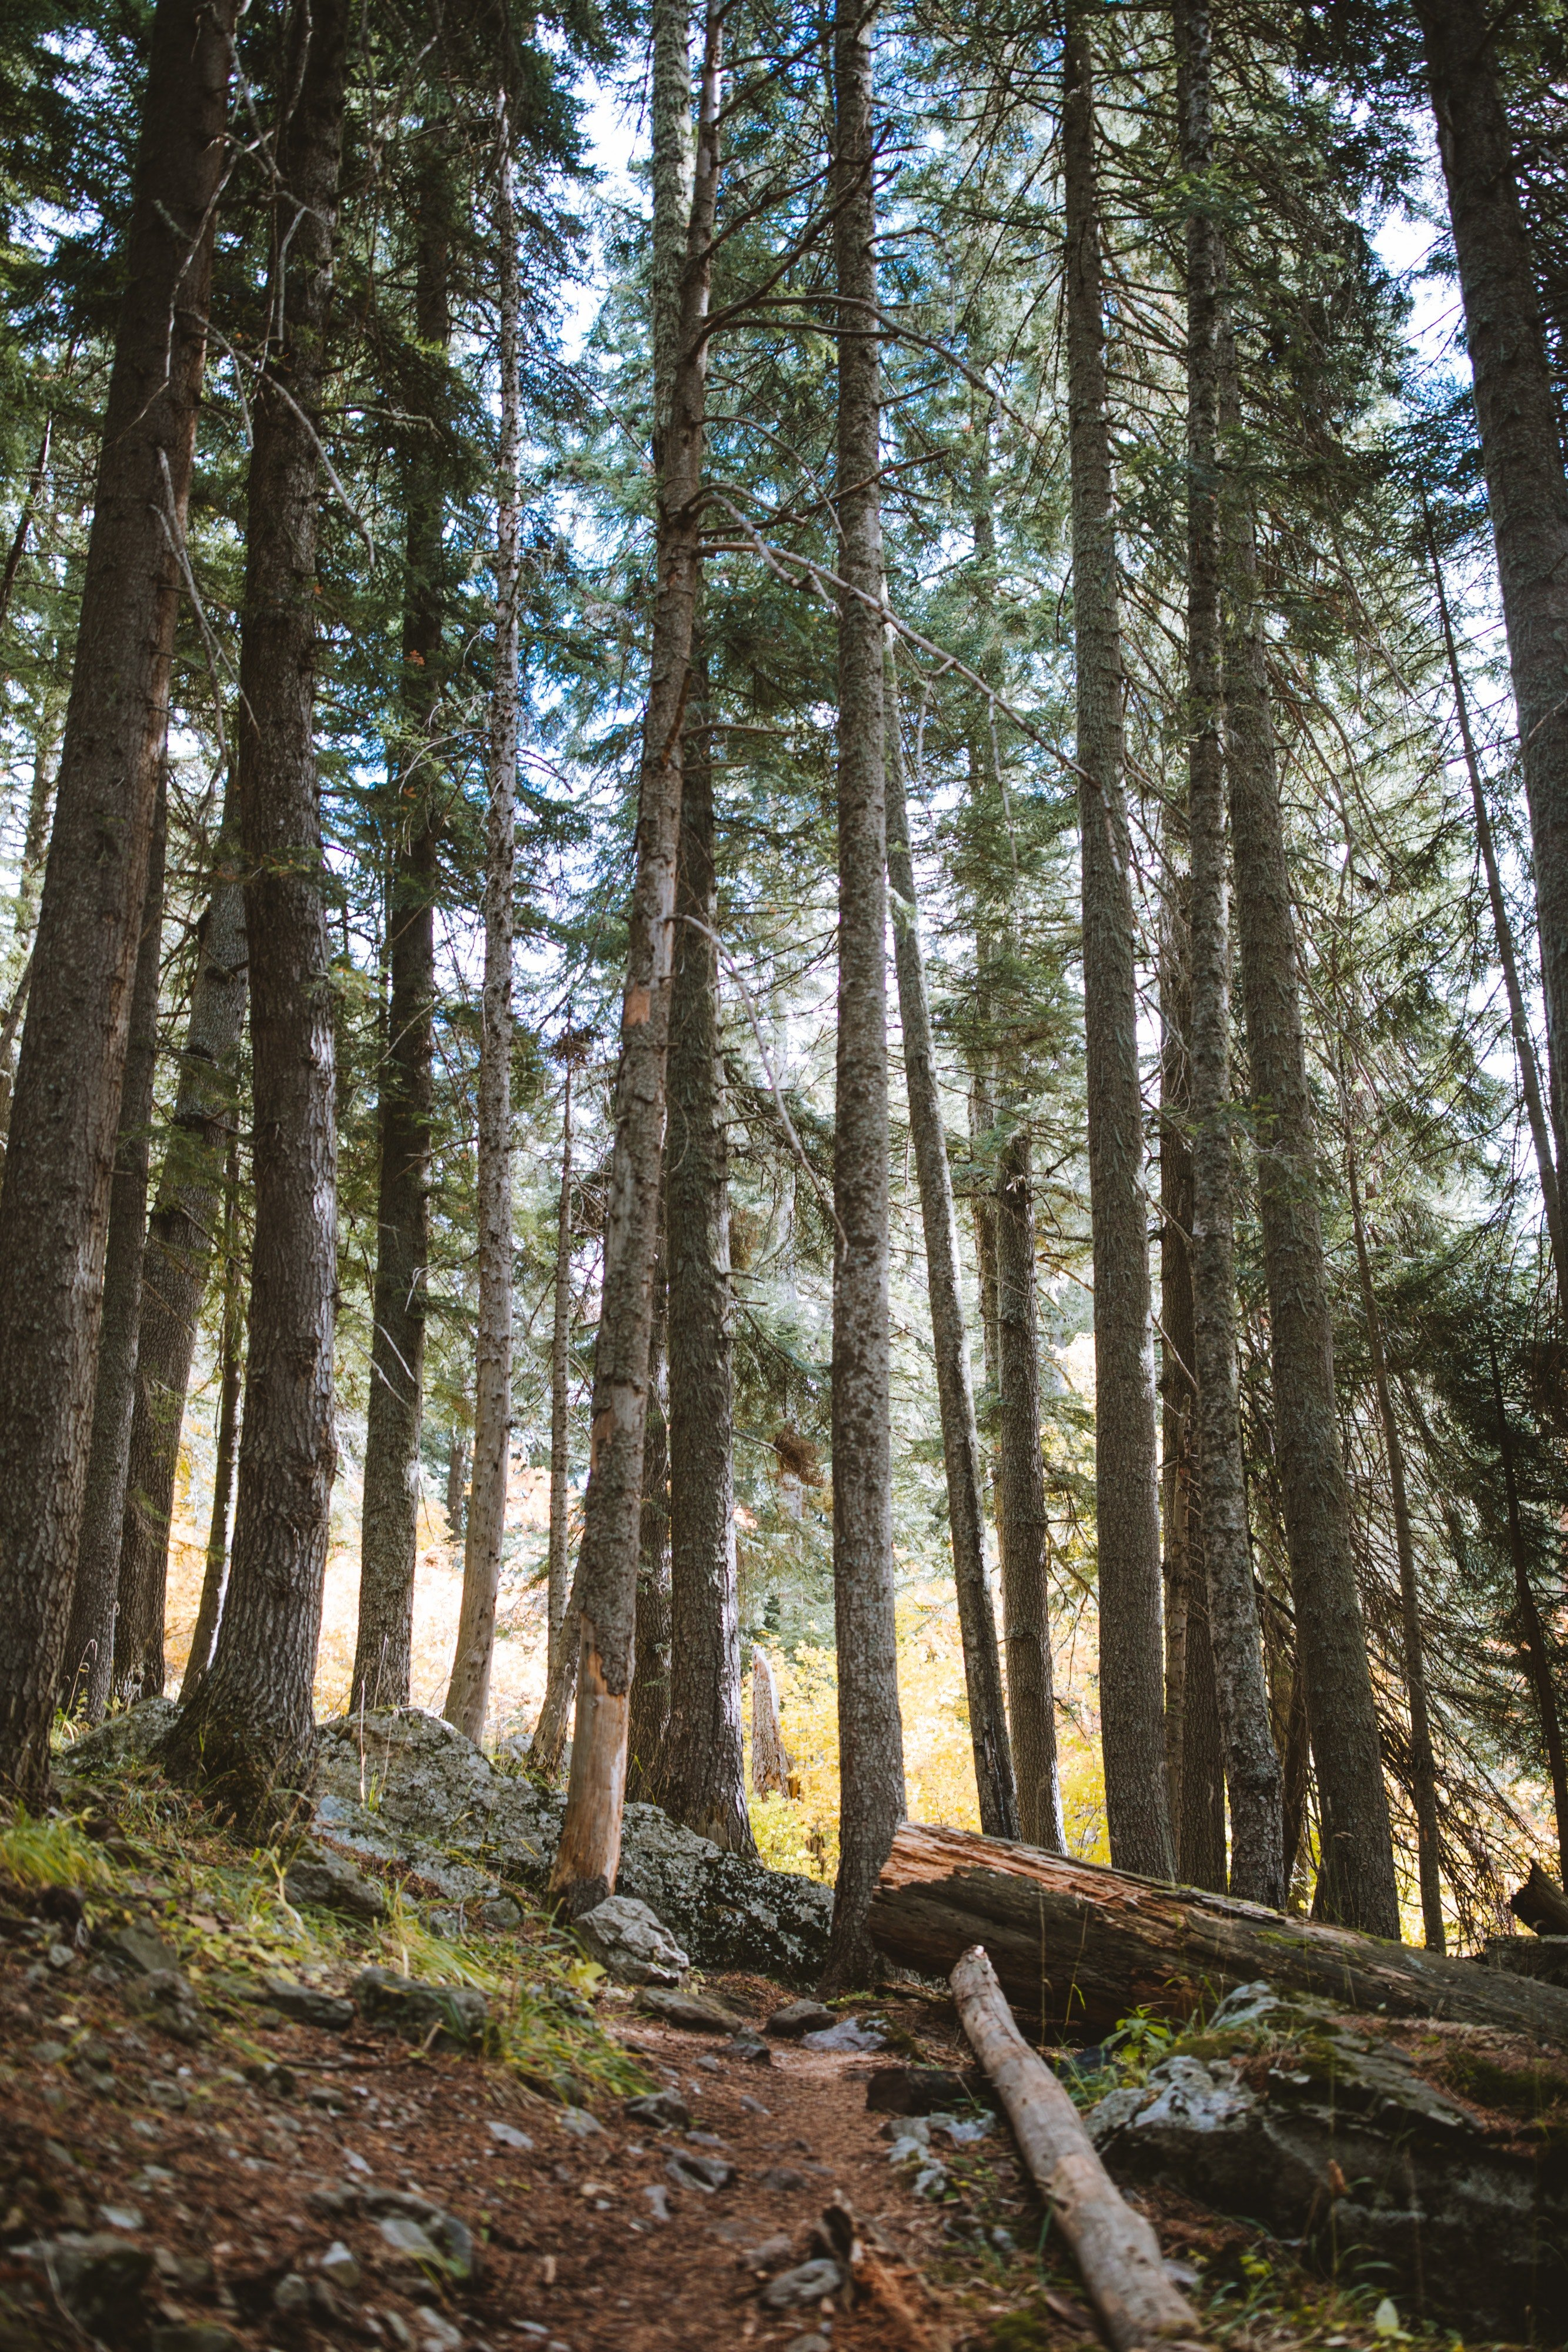 Pictured - A photo of the forest during daytime | Source: Pexels